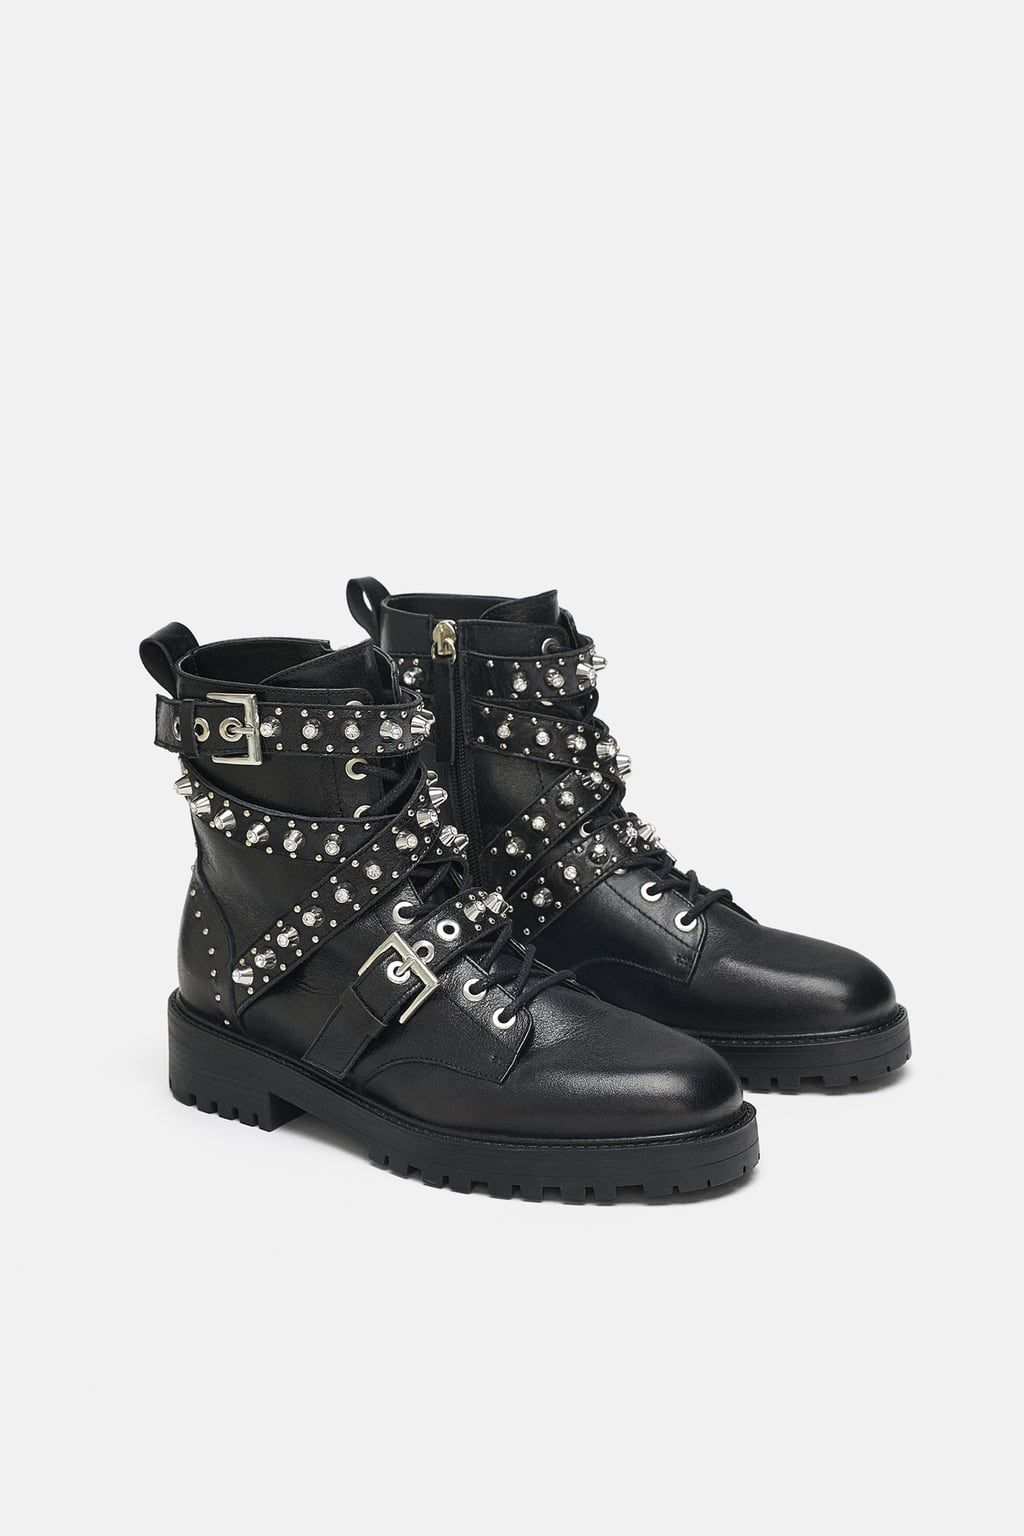 80ee7981fa75 Image 1 of LEATHER ANKLE BOOTS WITH JEWEL DETAILS from Zara